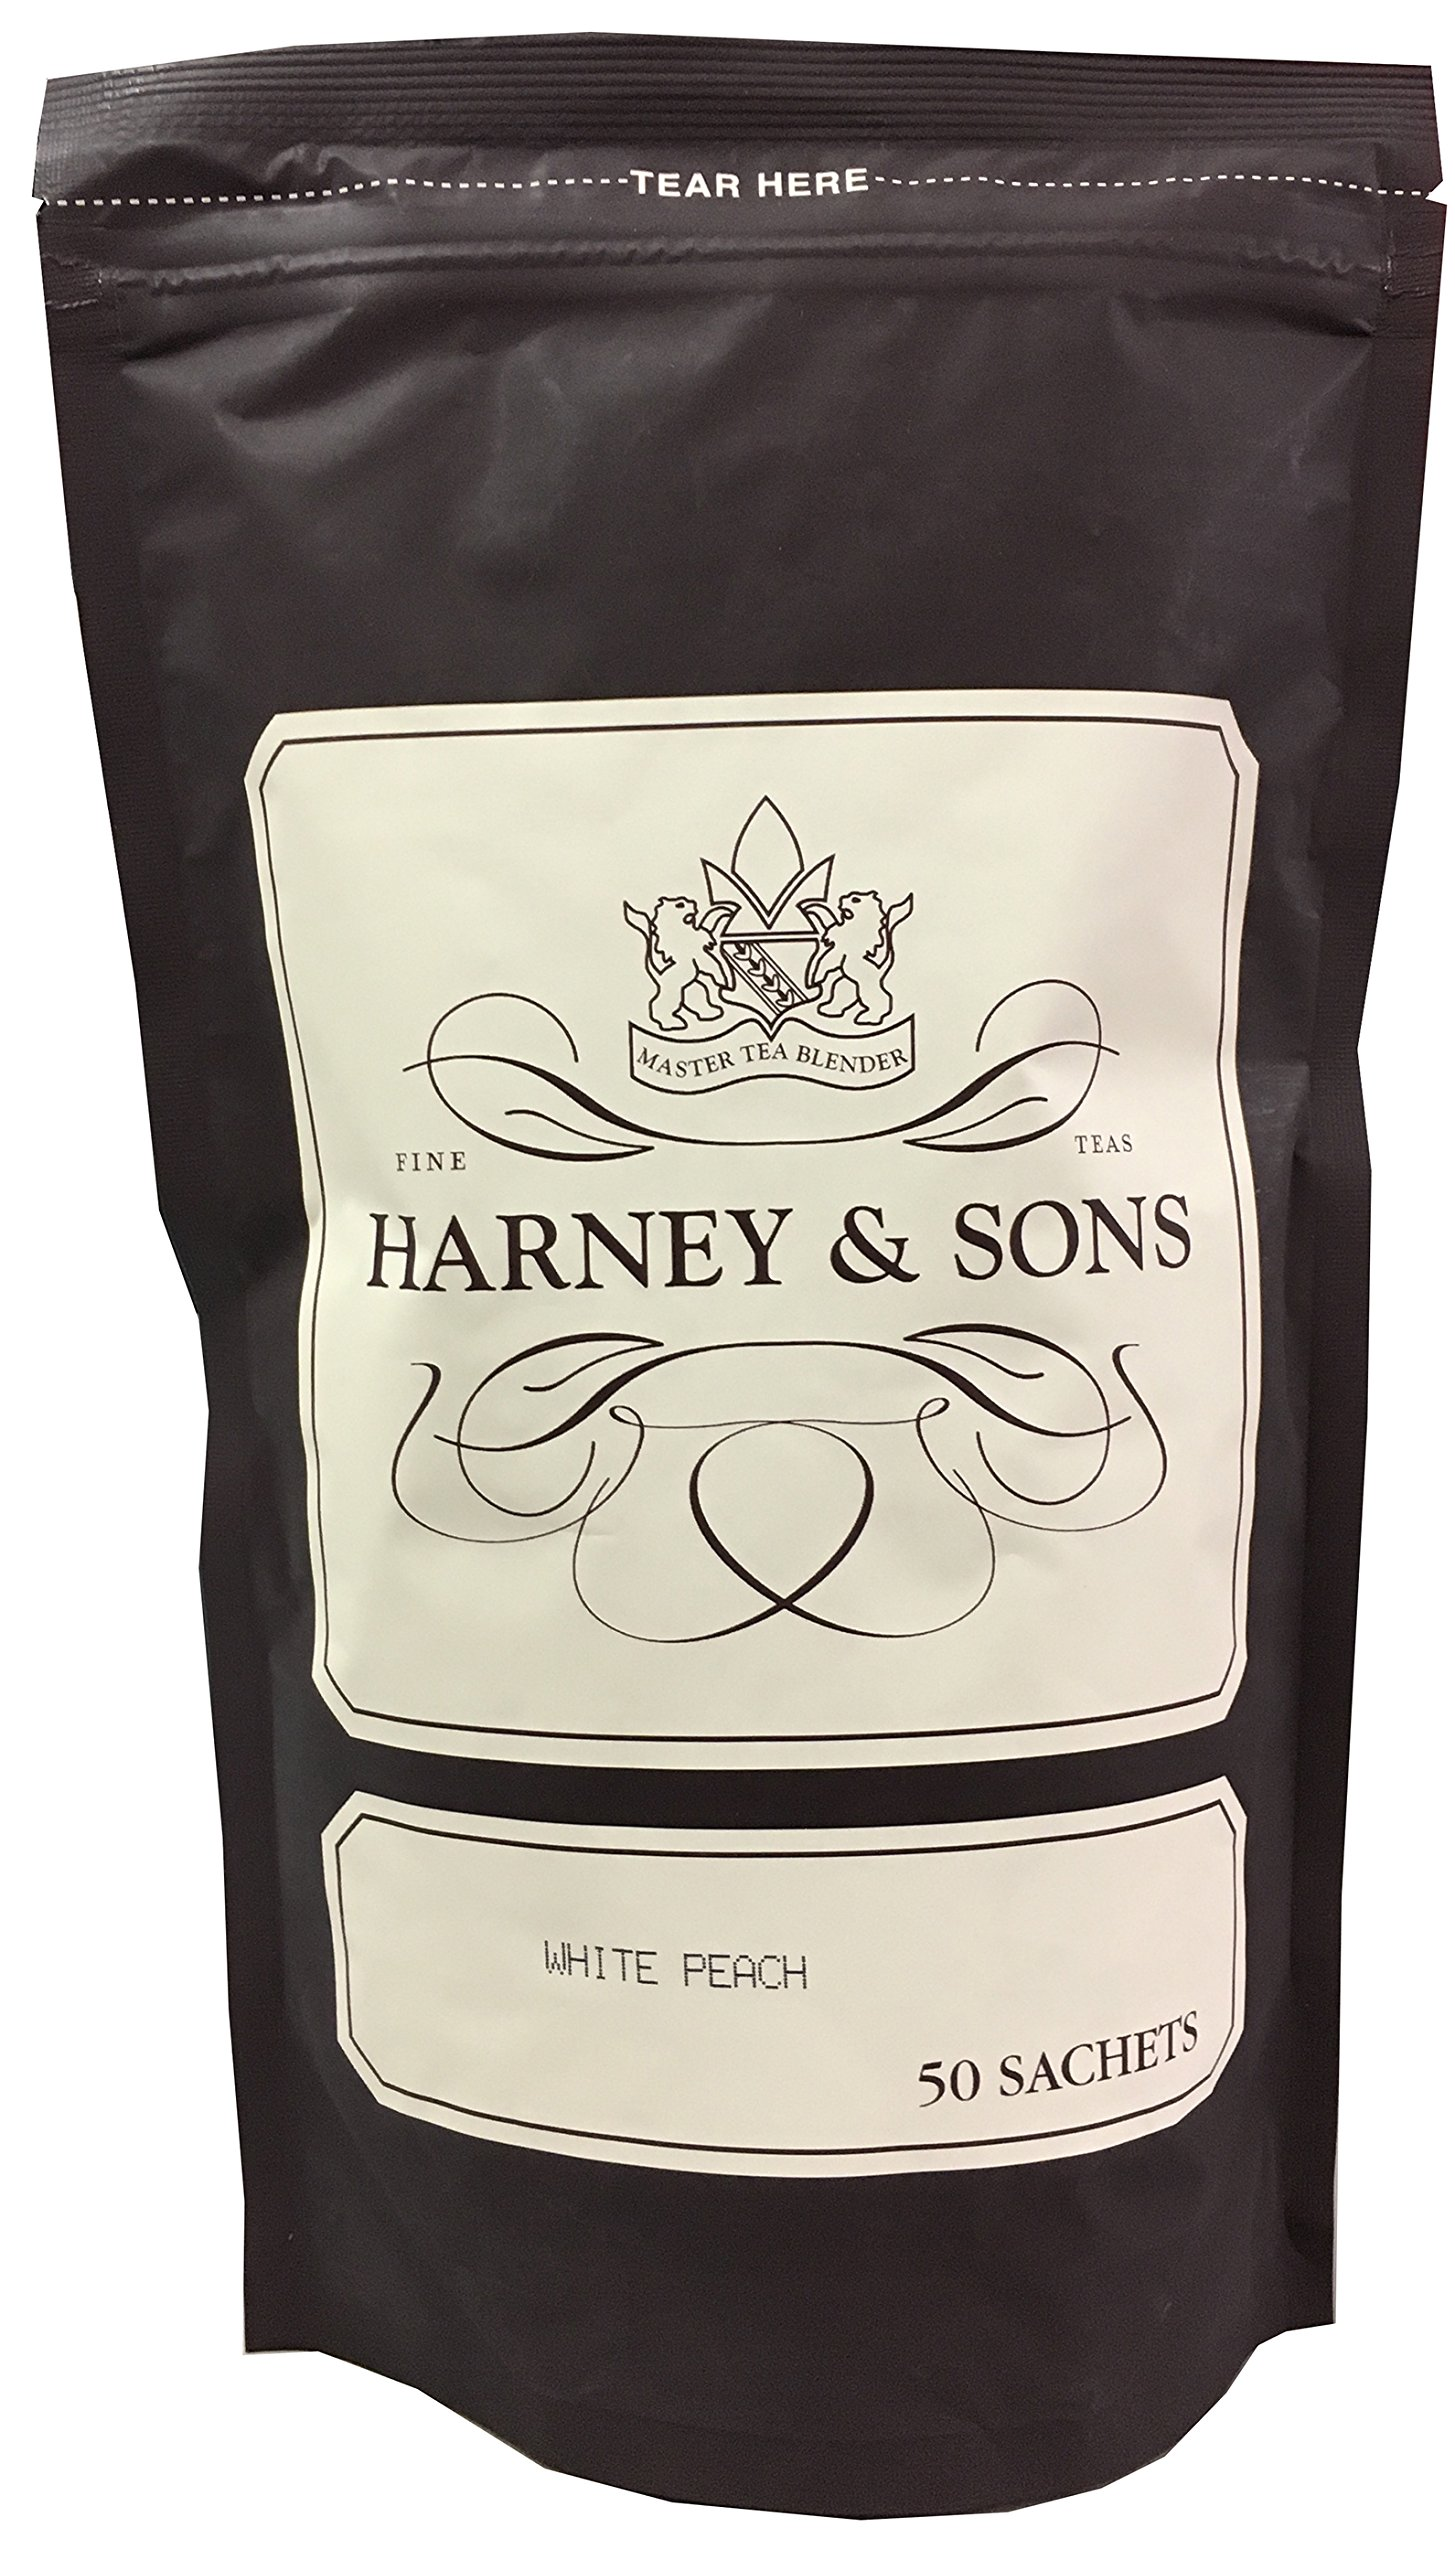 Harney & Sons Fine Teas White Peach Tea 50 Sachets